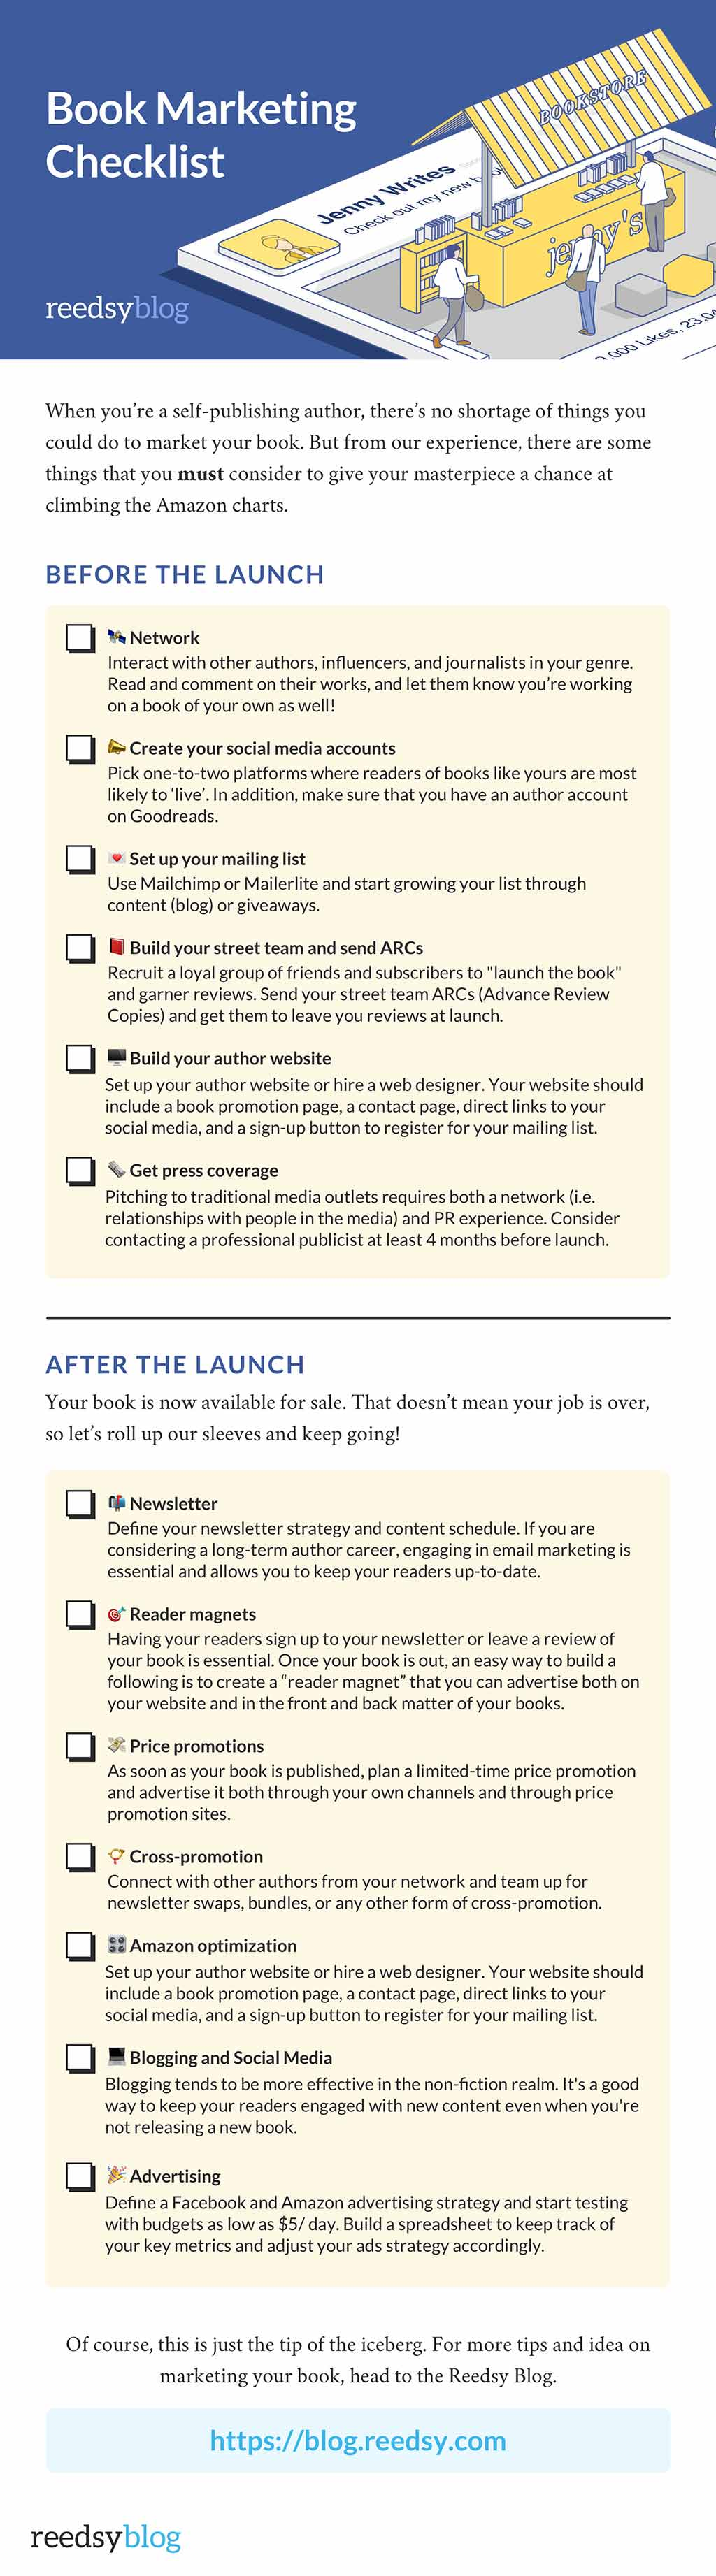 Reedsy Book Marketing Ideas Checklist